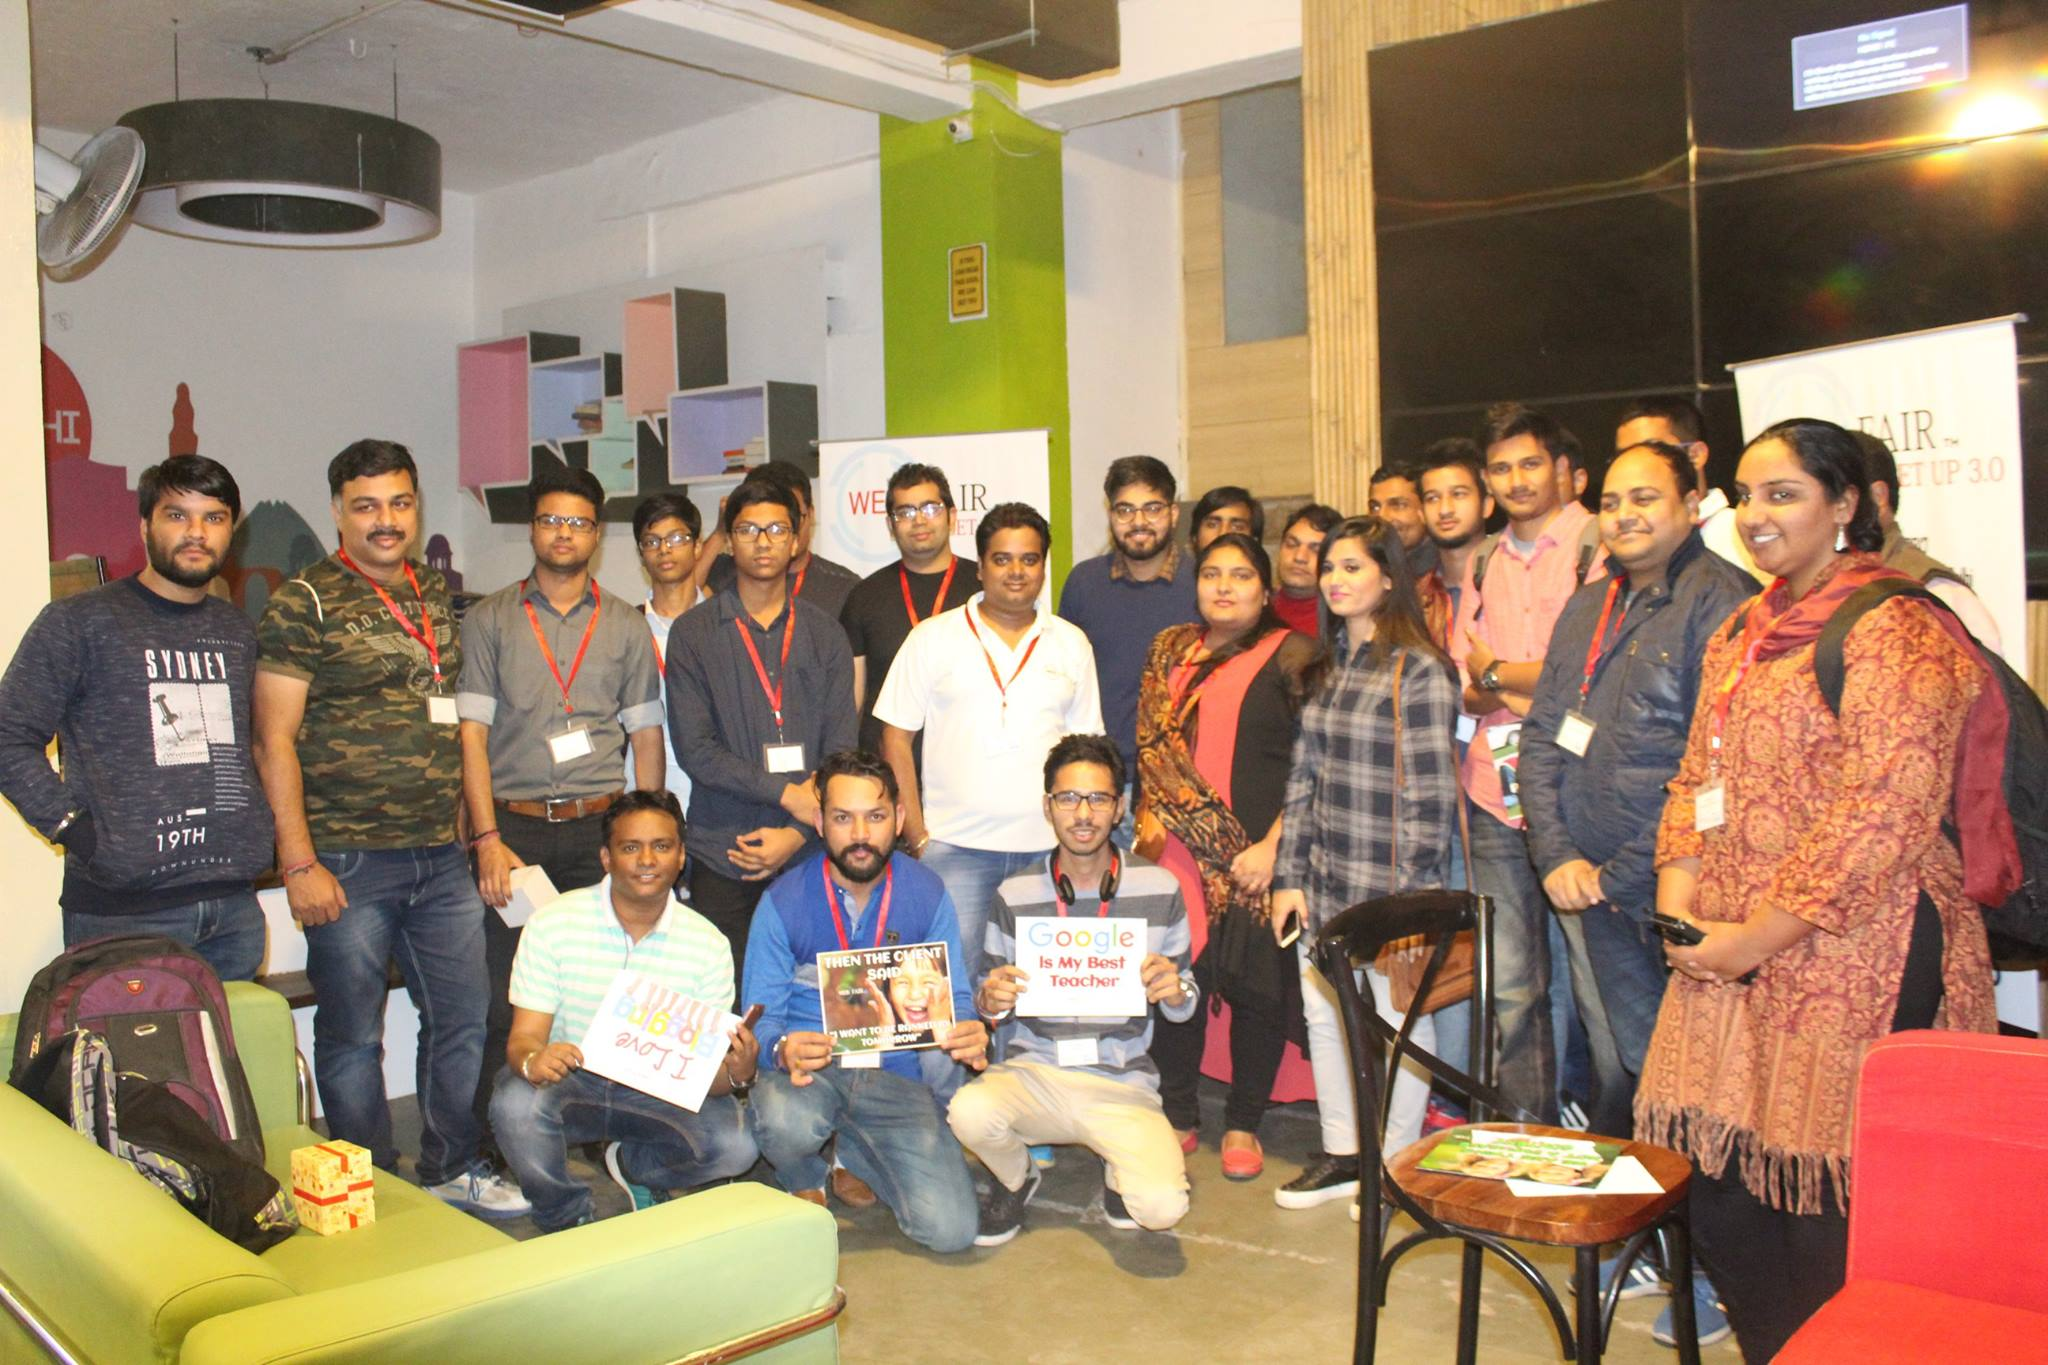 webfair-meetup-3